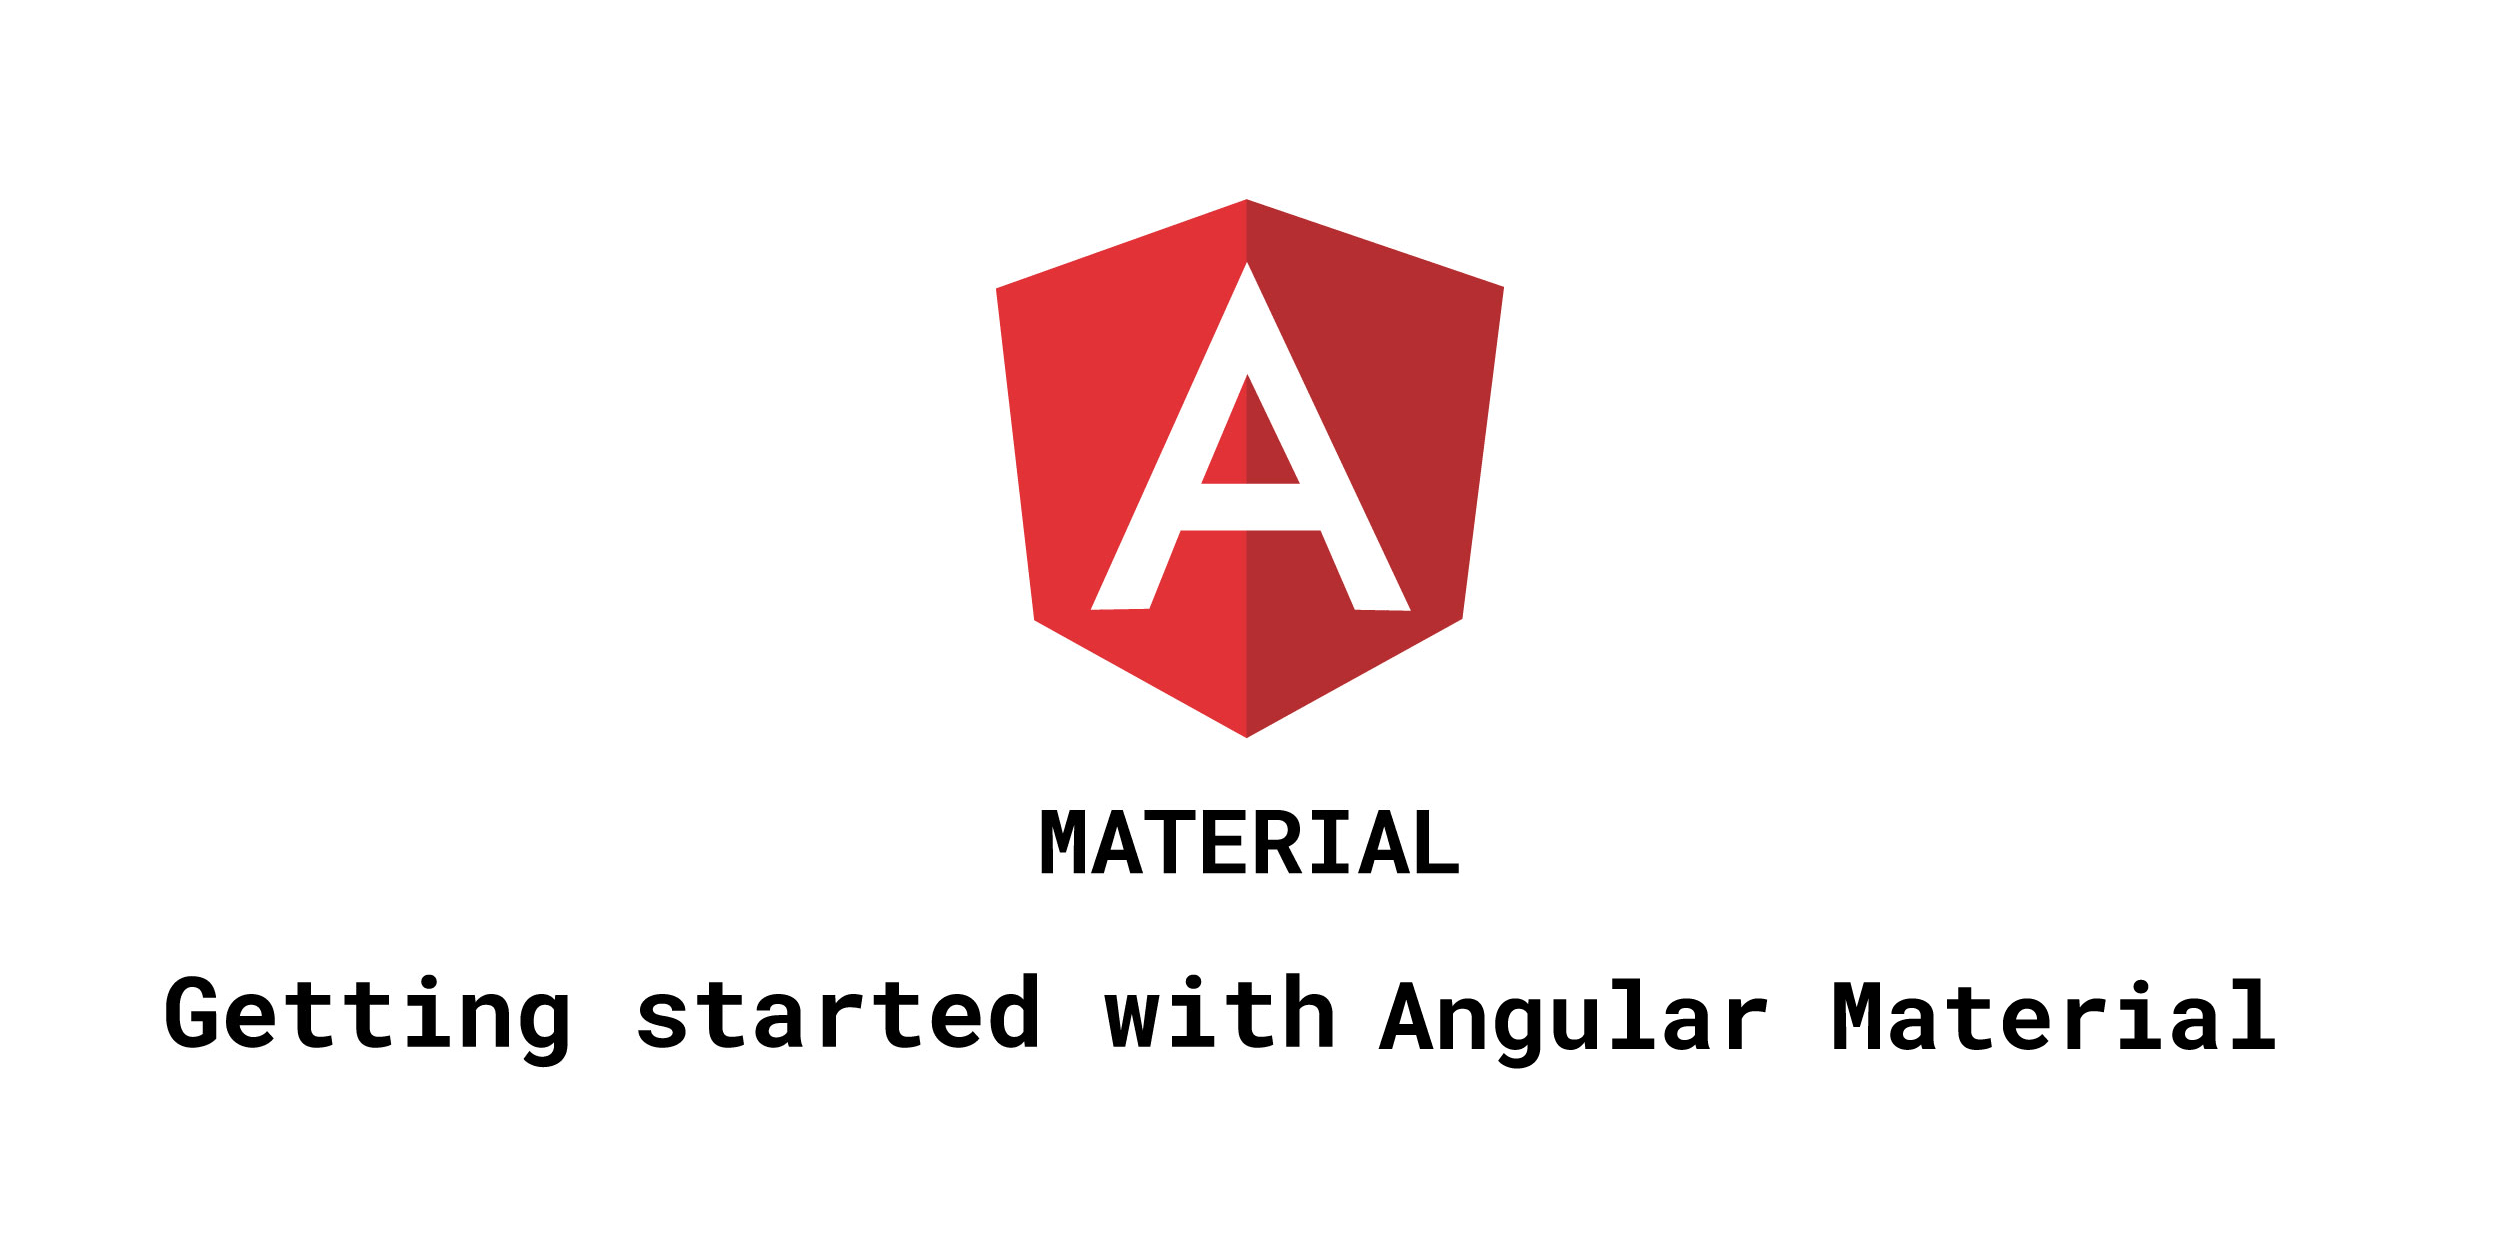 Install angular material angular cdk and angular animations | Peatix